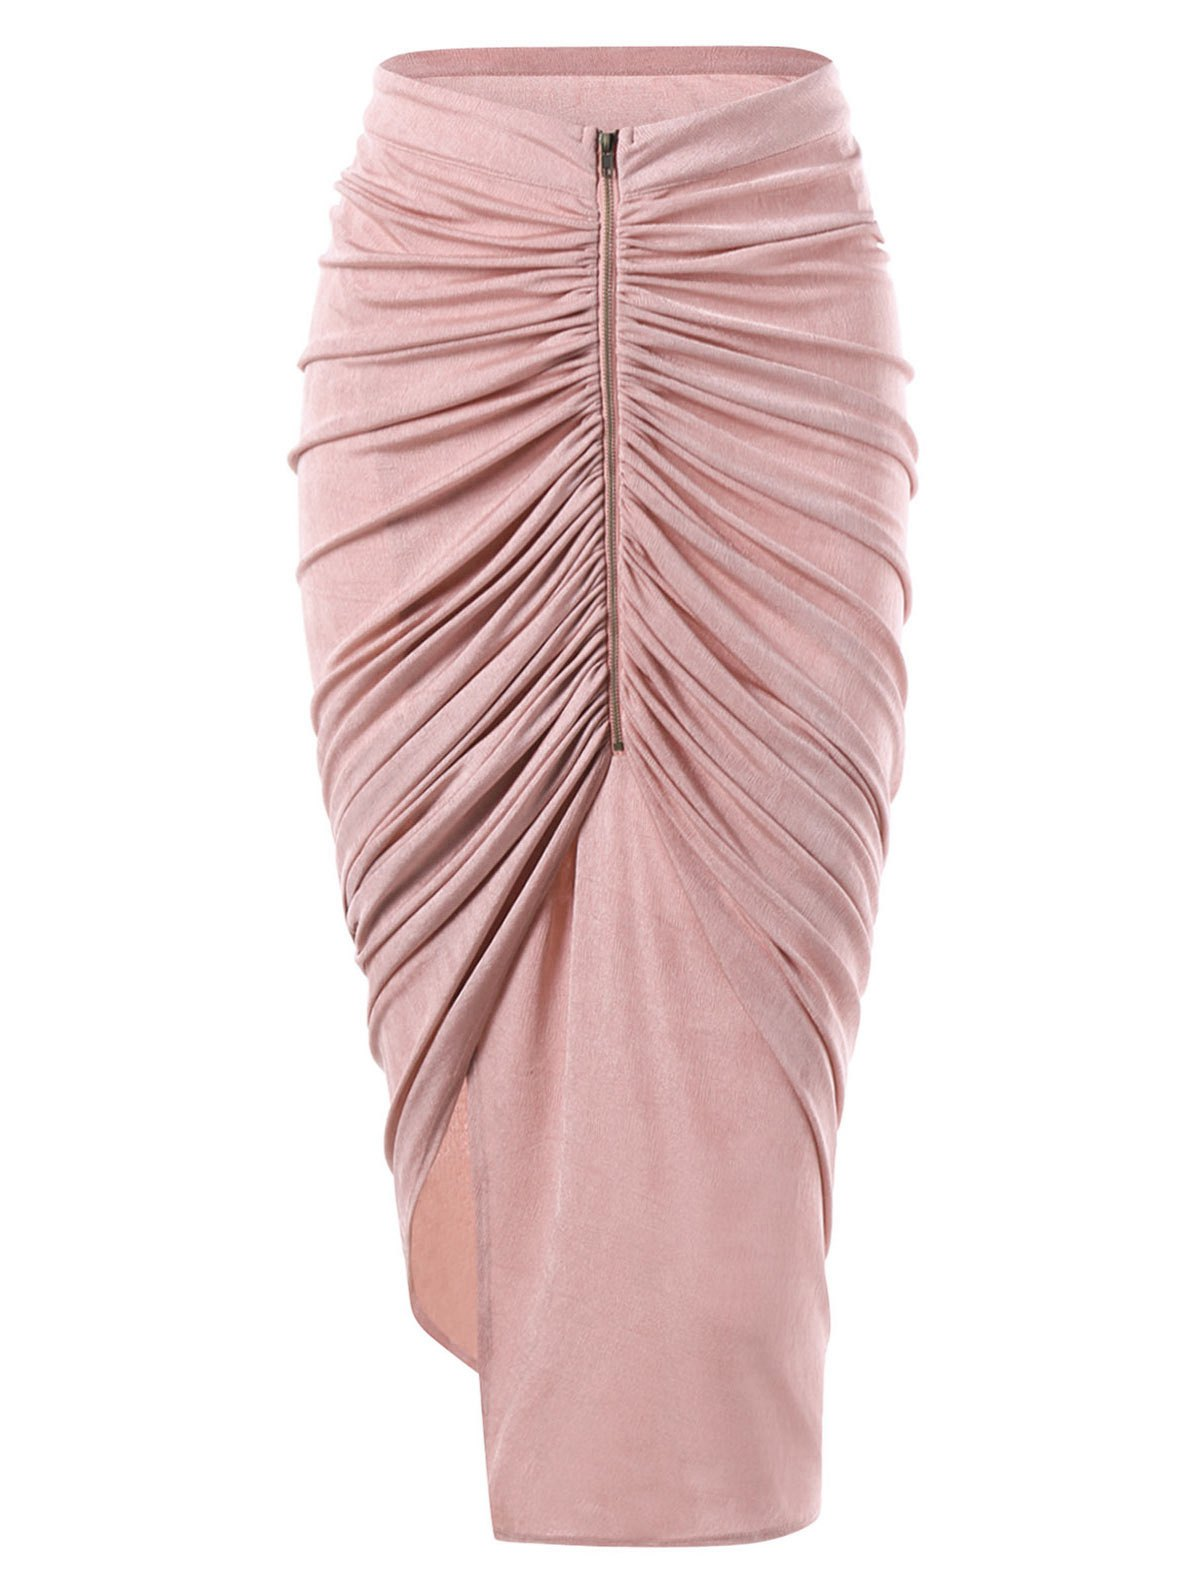 Zipper Asymmetrical Ruched Midi SkirtWOMEN<br><br>Size: L; Color: PINK; Material: Polyester; Length: Mid-Calf; Silhouette: Asymmetrical; Pattern Type: Solid; Embellishment: Ruched; Season: Fall,Spring,Winter; Weight: 0.2600kg; Package Contents: 1 x Skirt;